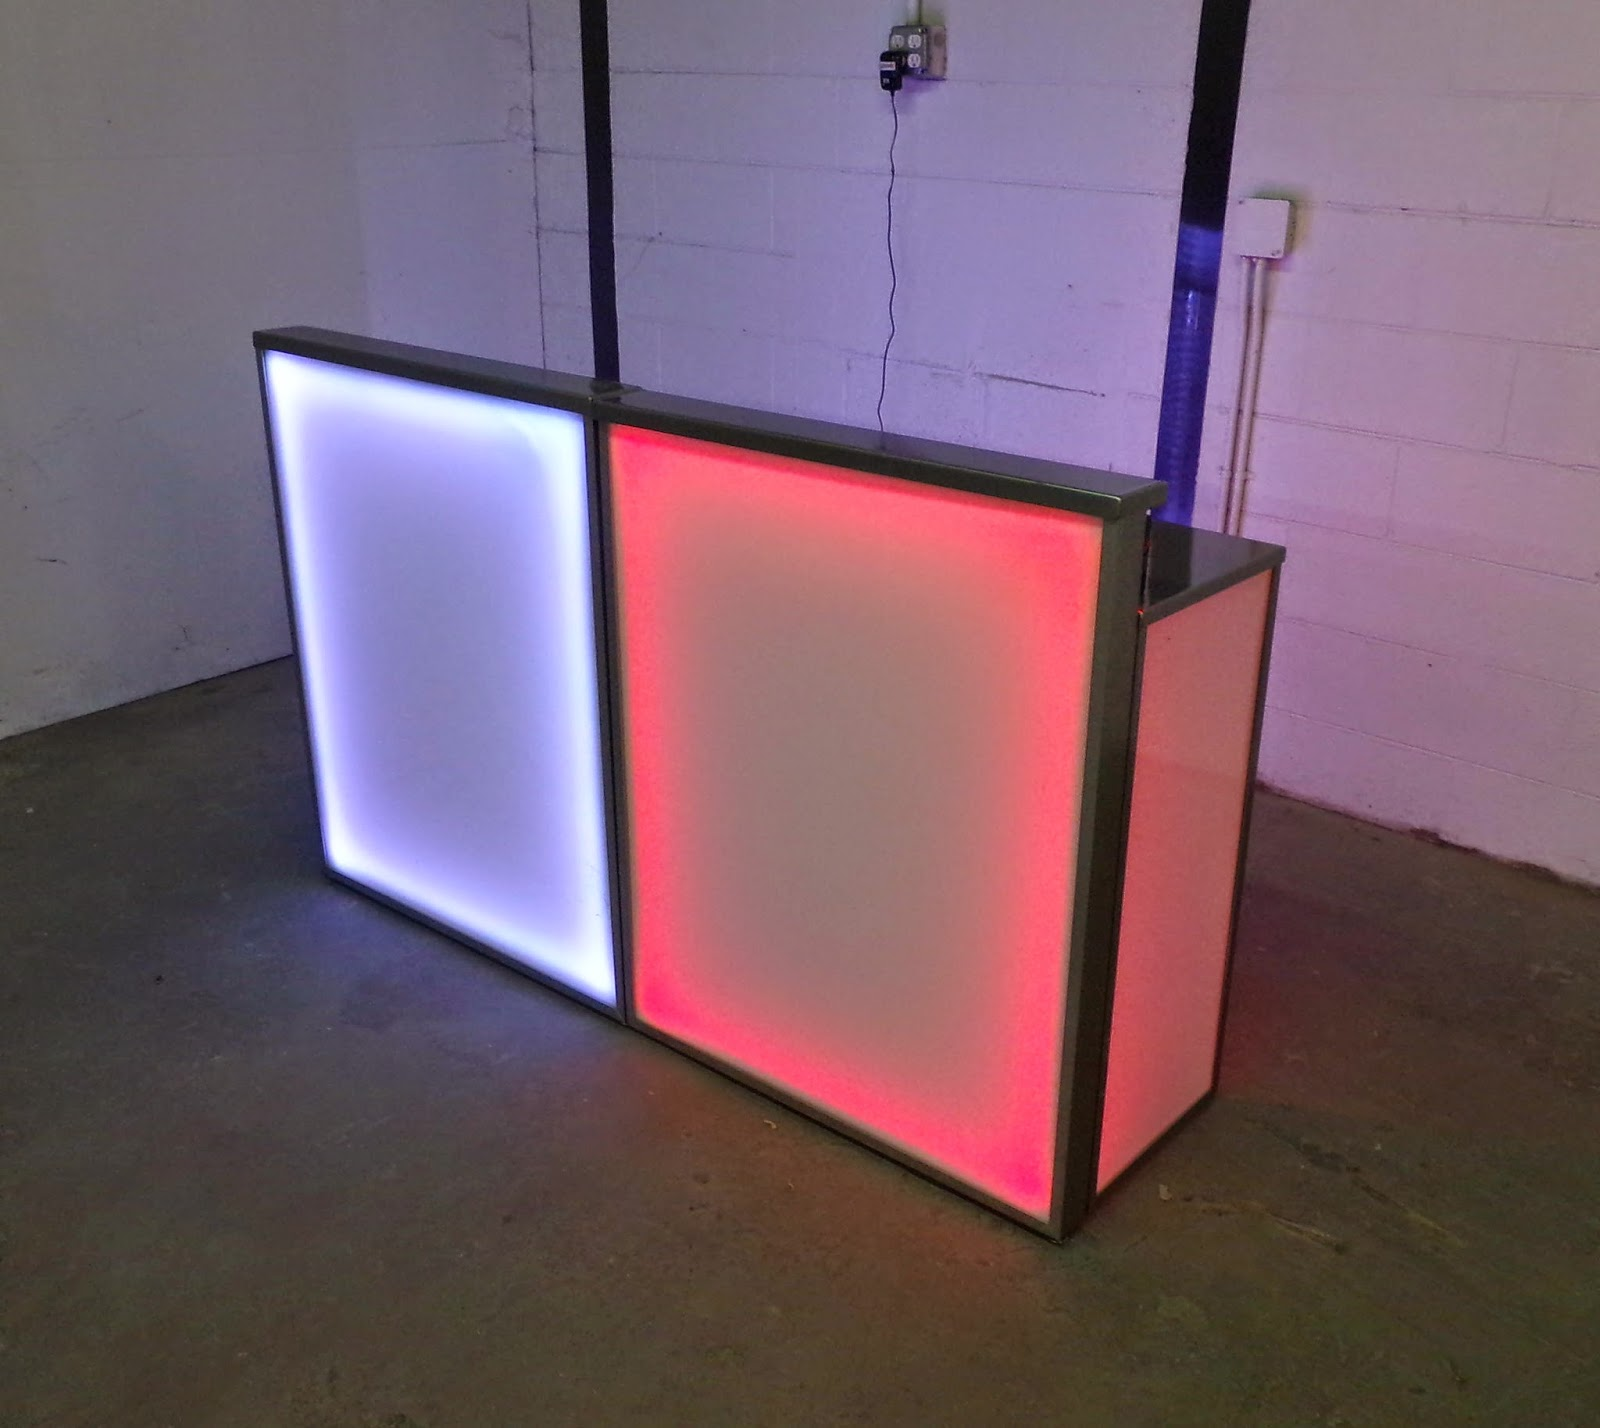 Barchefs Light Up Portable Bar And Valet Table